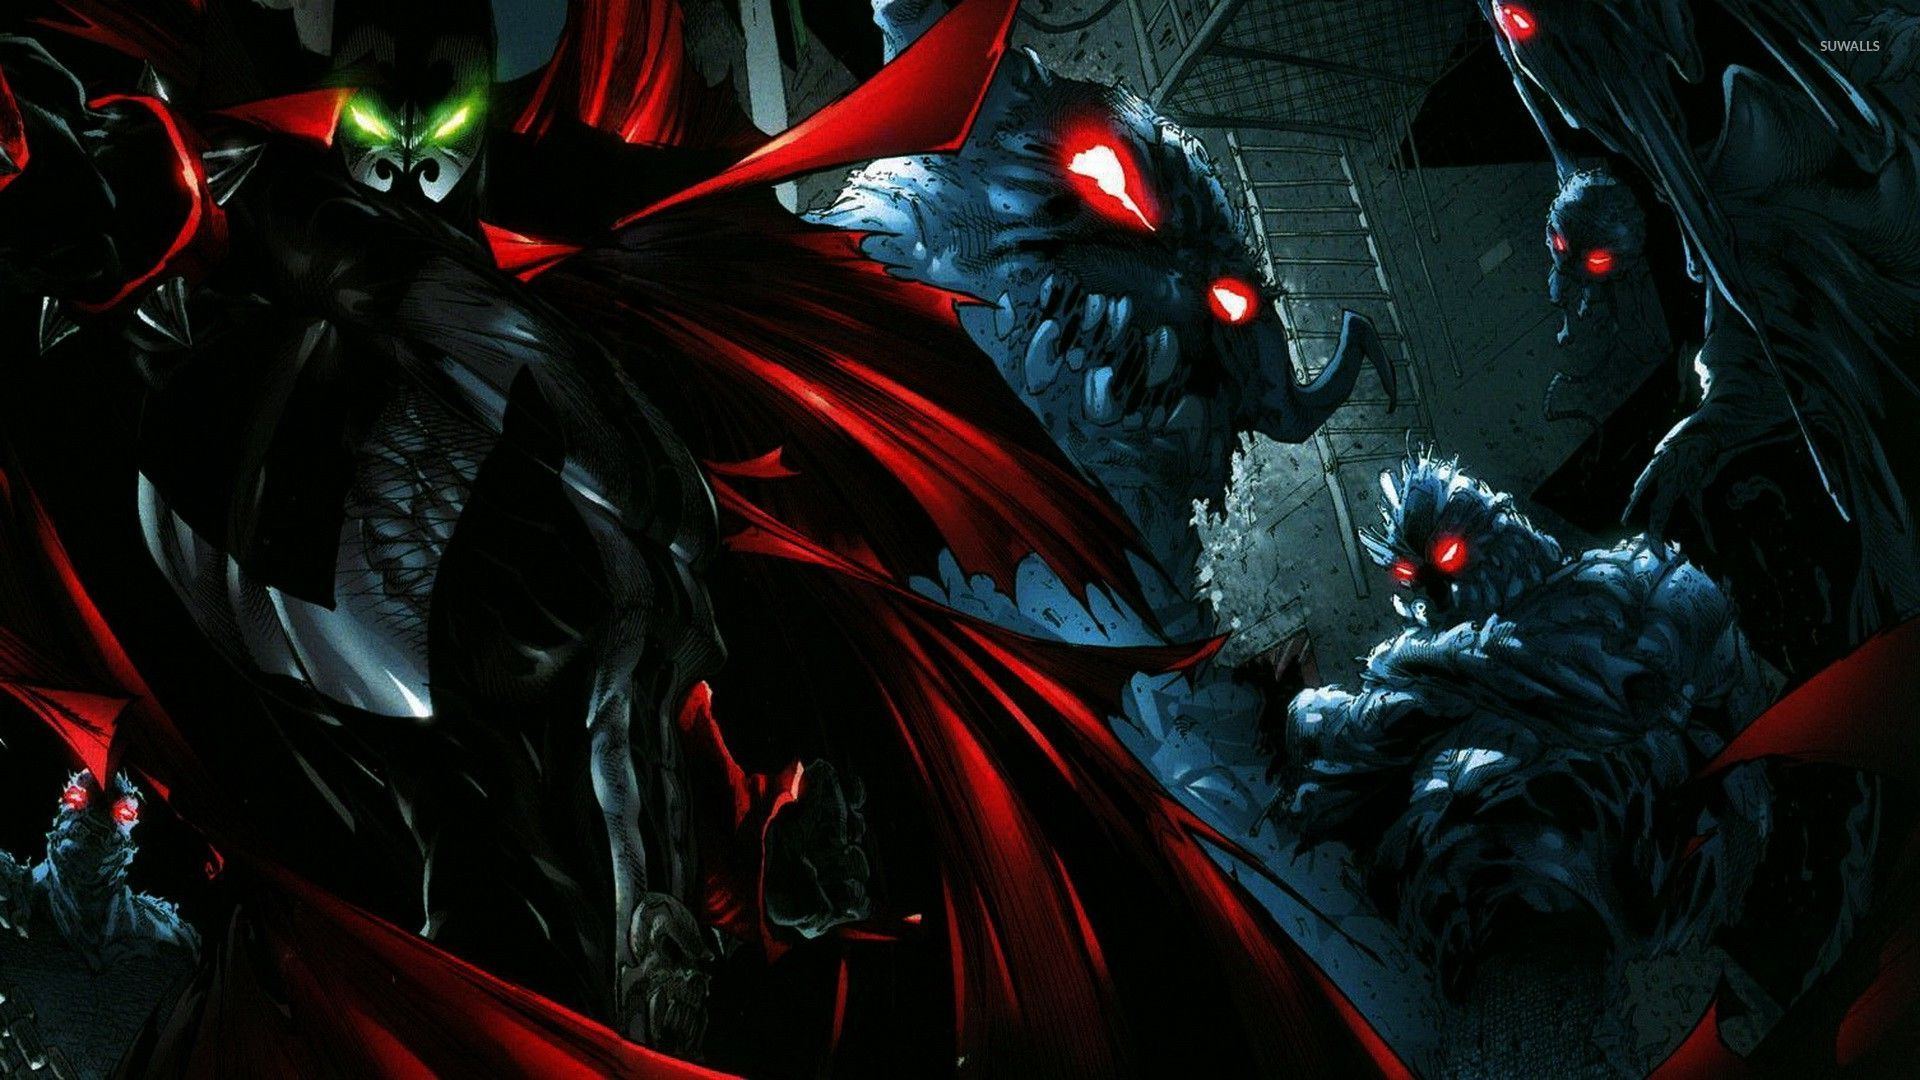 spawn wallpapers 1920x1080 - photo #19